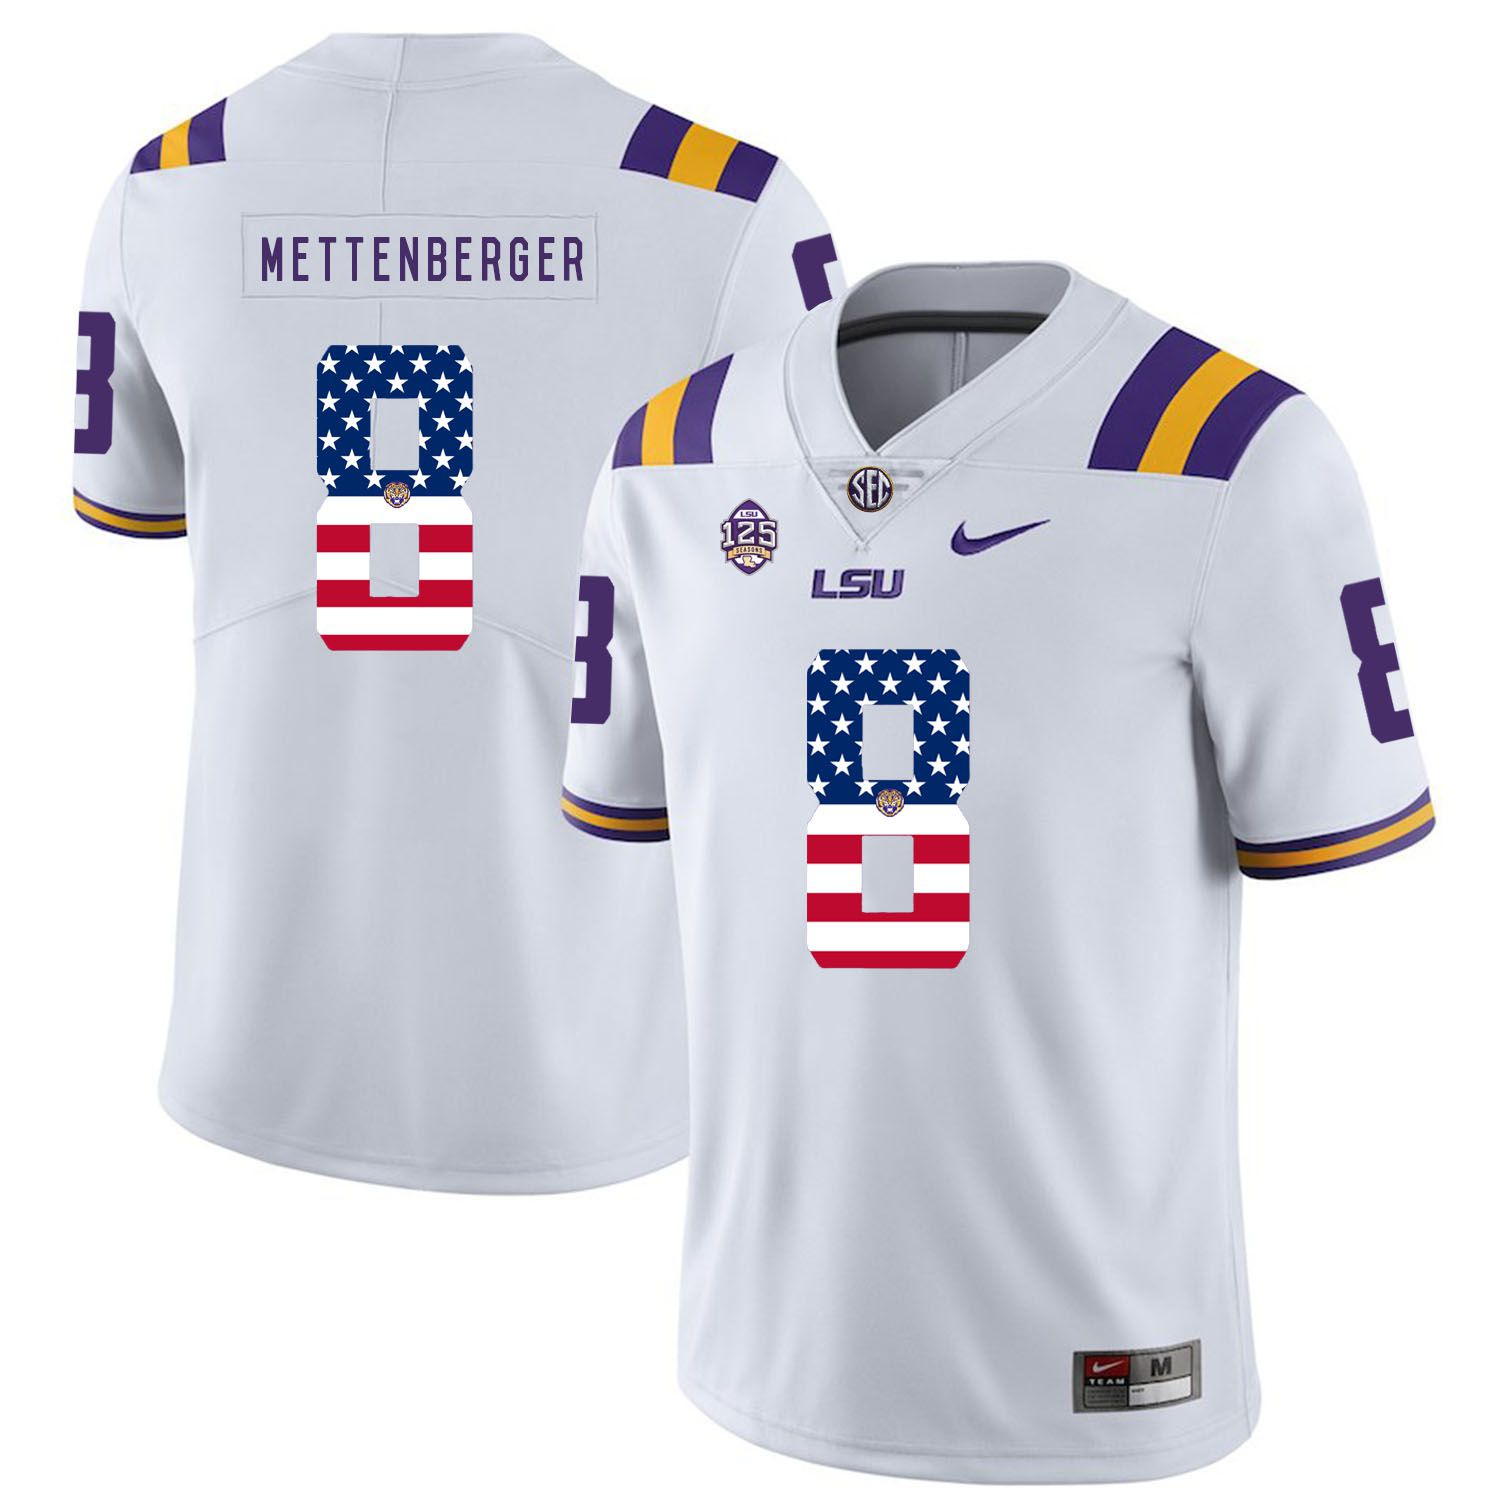 Men LSU Tigers 8 Mettenberger White Flag Customized NCAA Jerseys